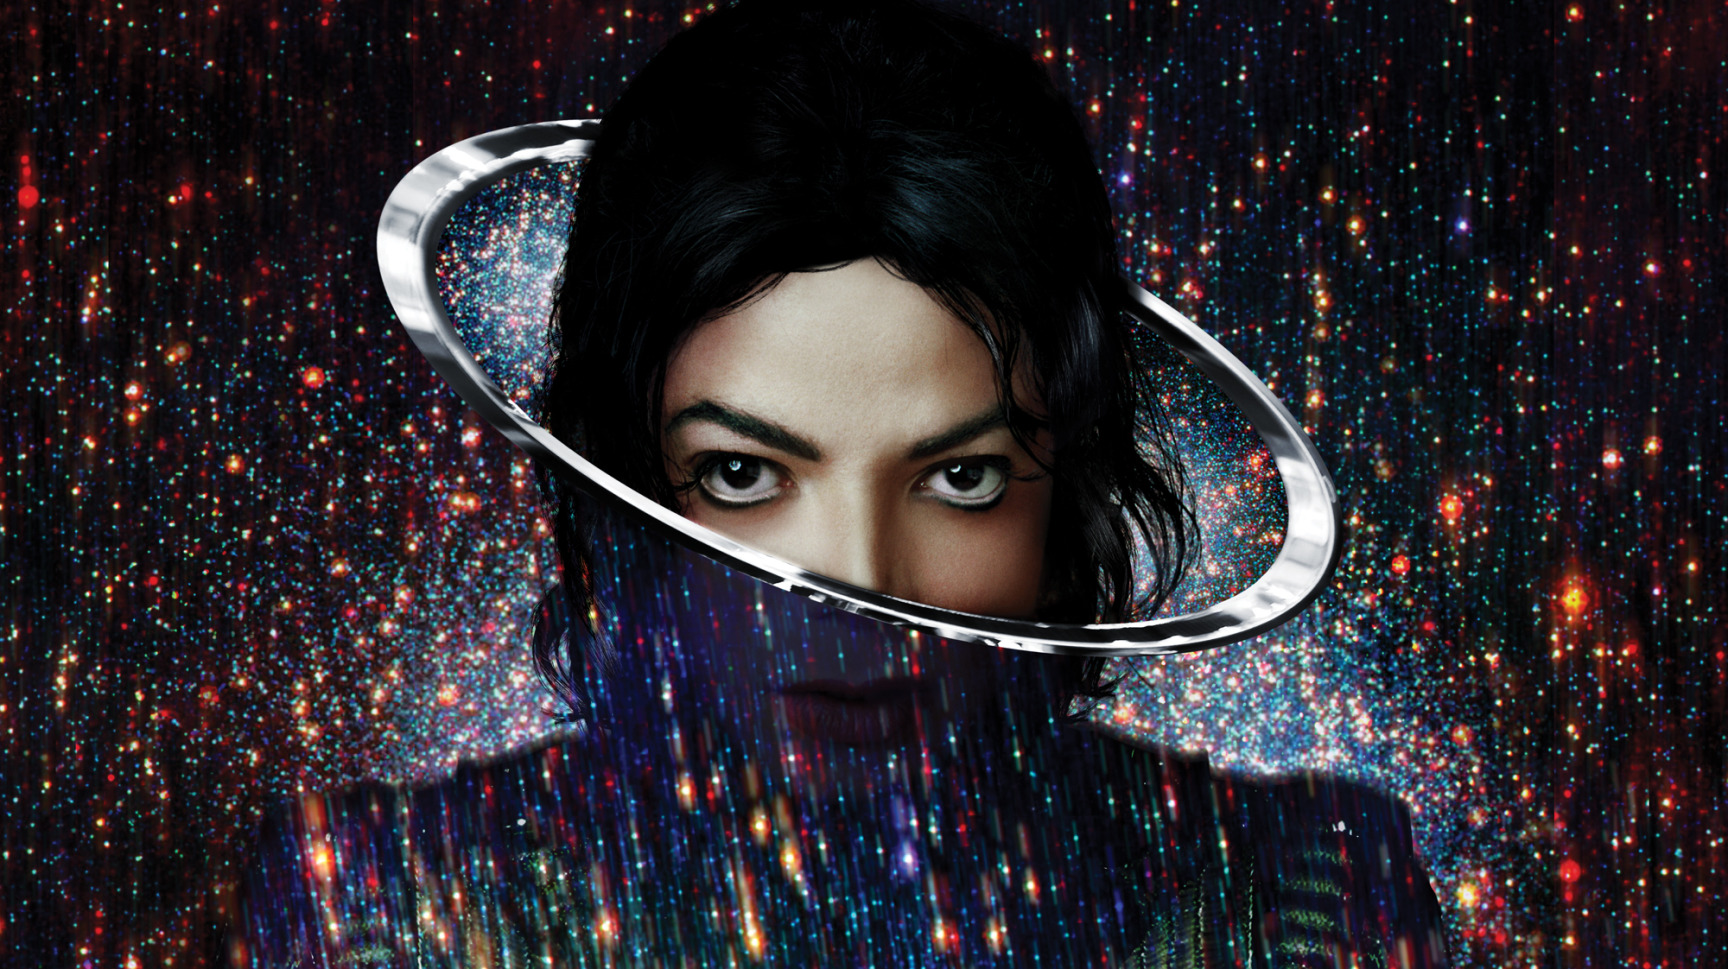 Music<br /><strong>Michael Jackson - Xscape</strong>